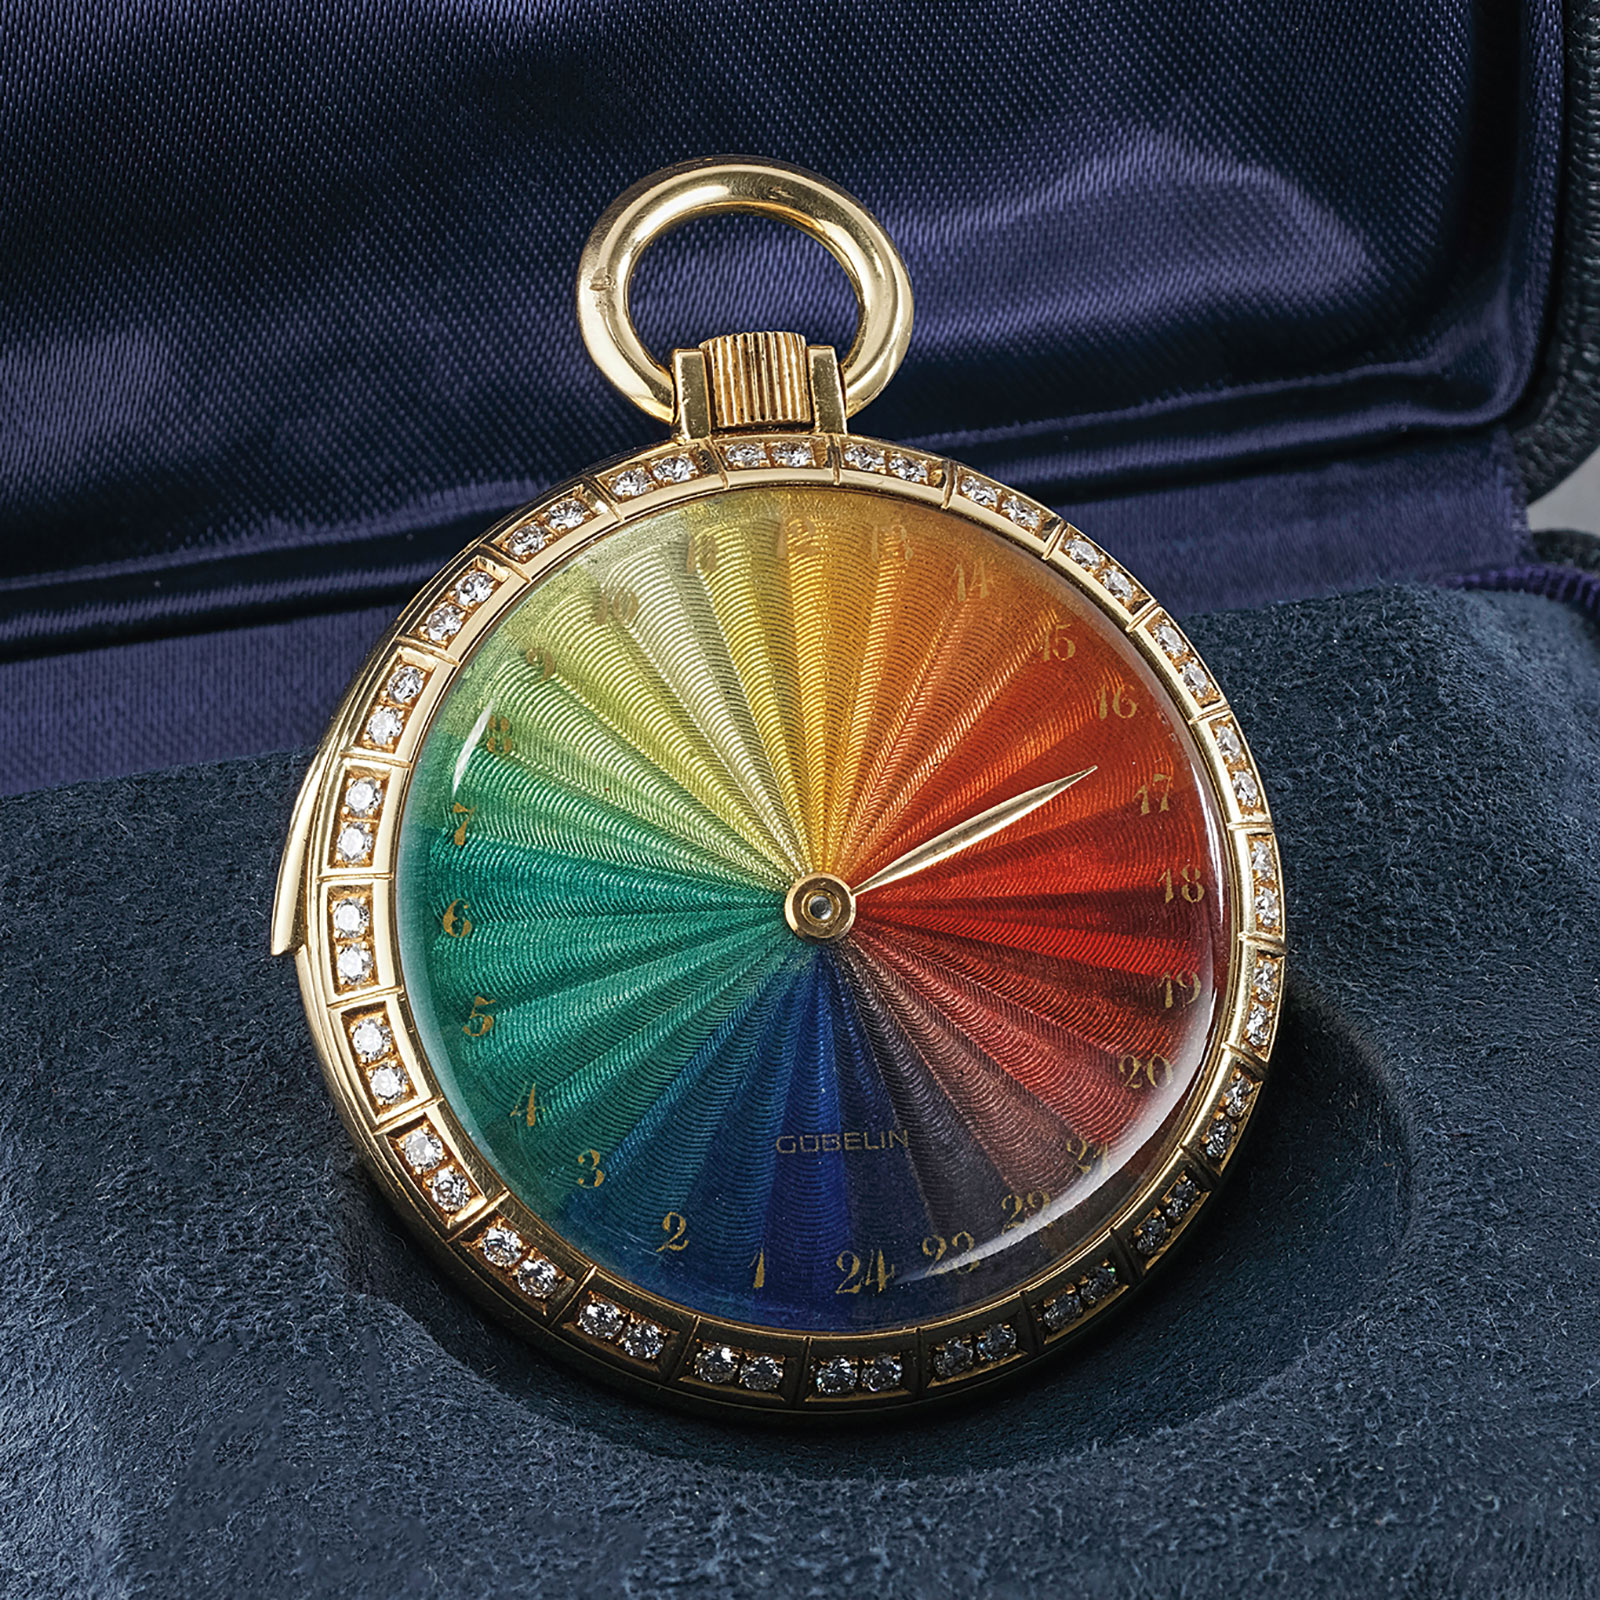 Gubelin rainbow minute repeater pocket watch Richard Daners